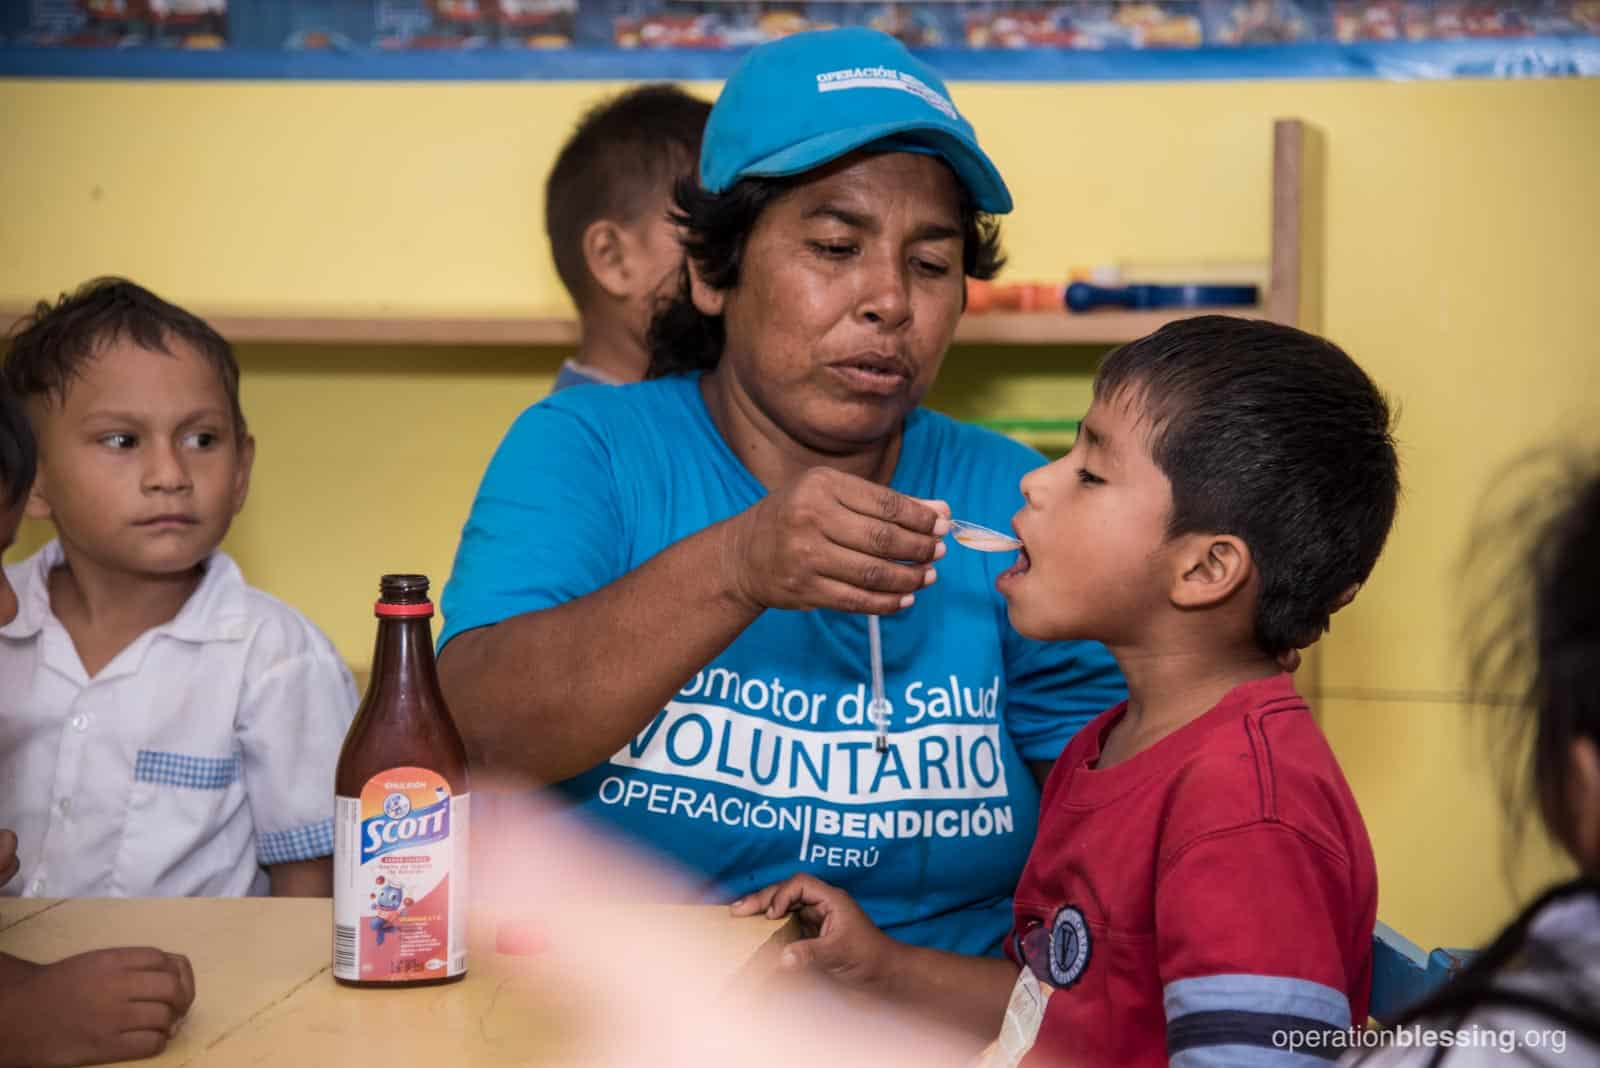 An Operation Blessing Community Health Worker gives a child nutritional supplements.